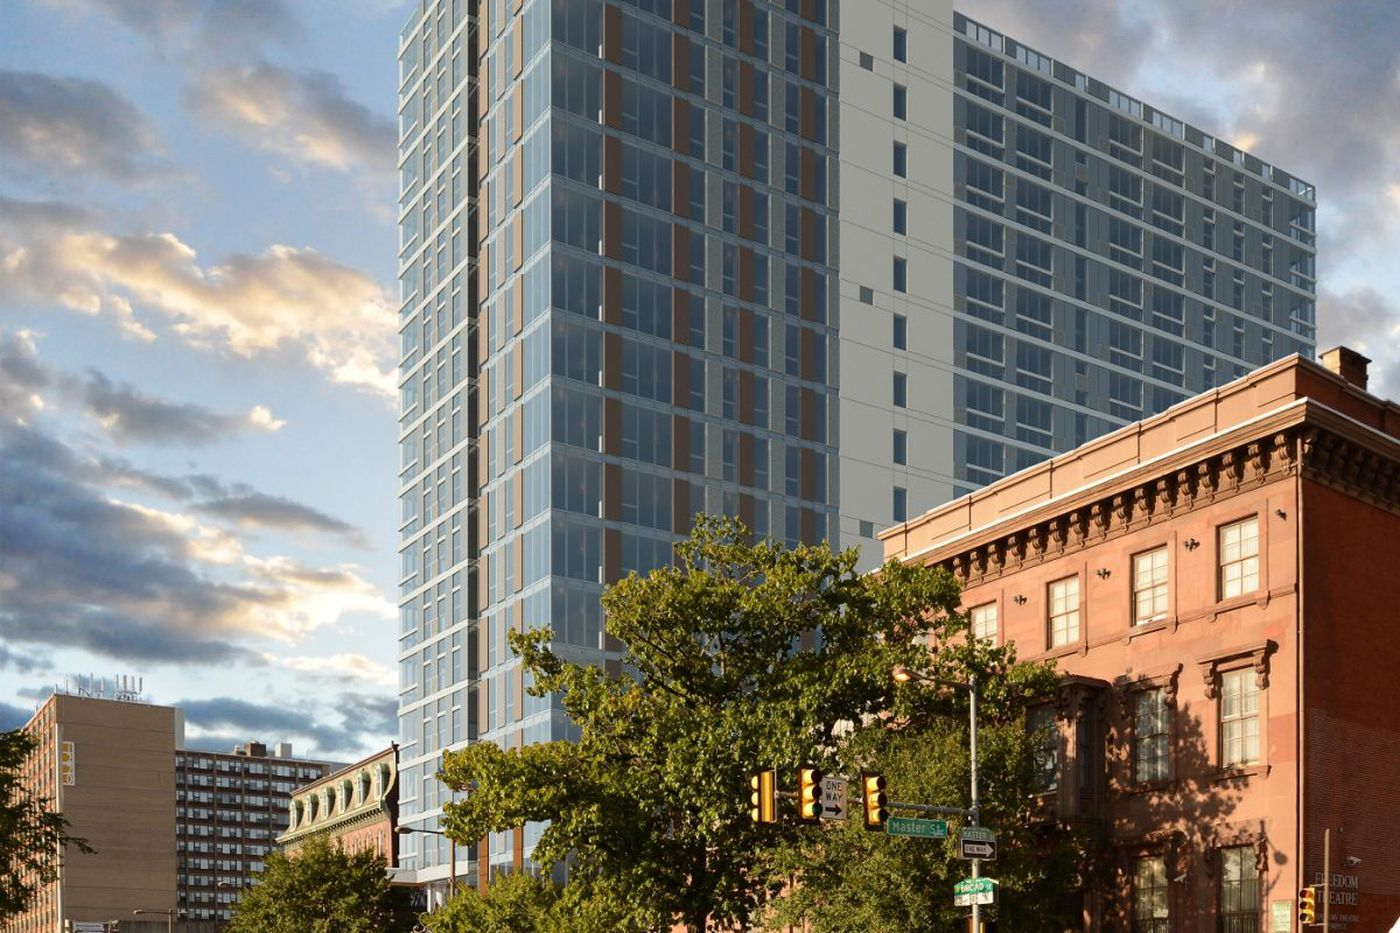 Work starts on apartment tower near Temple U. and historic North Broad Street venues